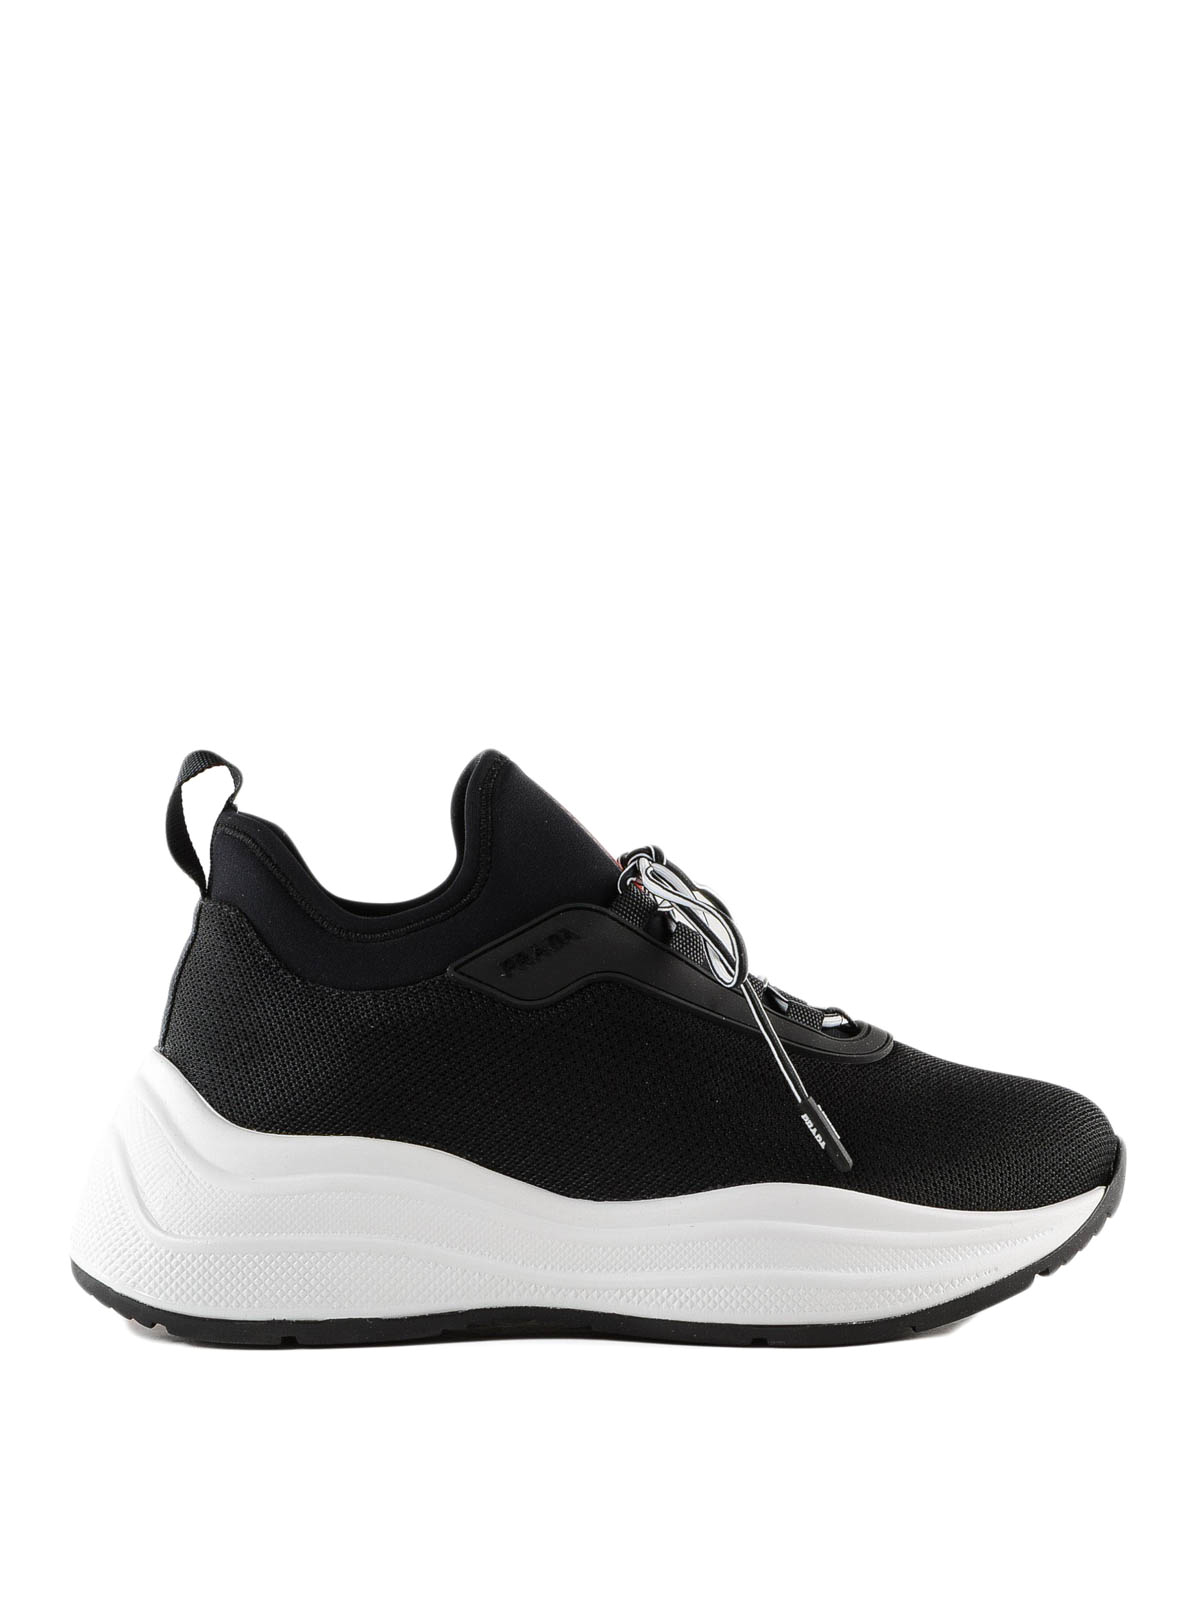 9d217a82ab37b Prada - Black mesh sneakers with chunky sole - trainers - 3E64253KTP 967